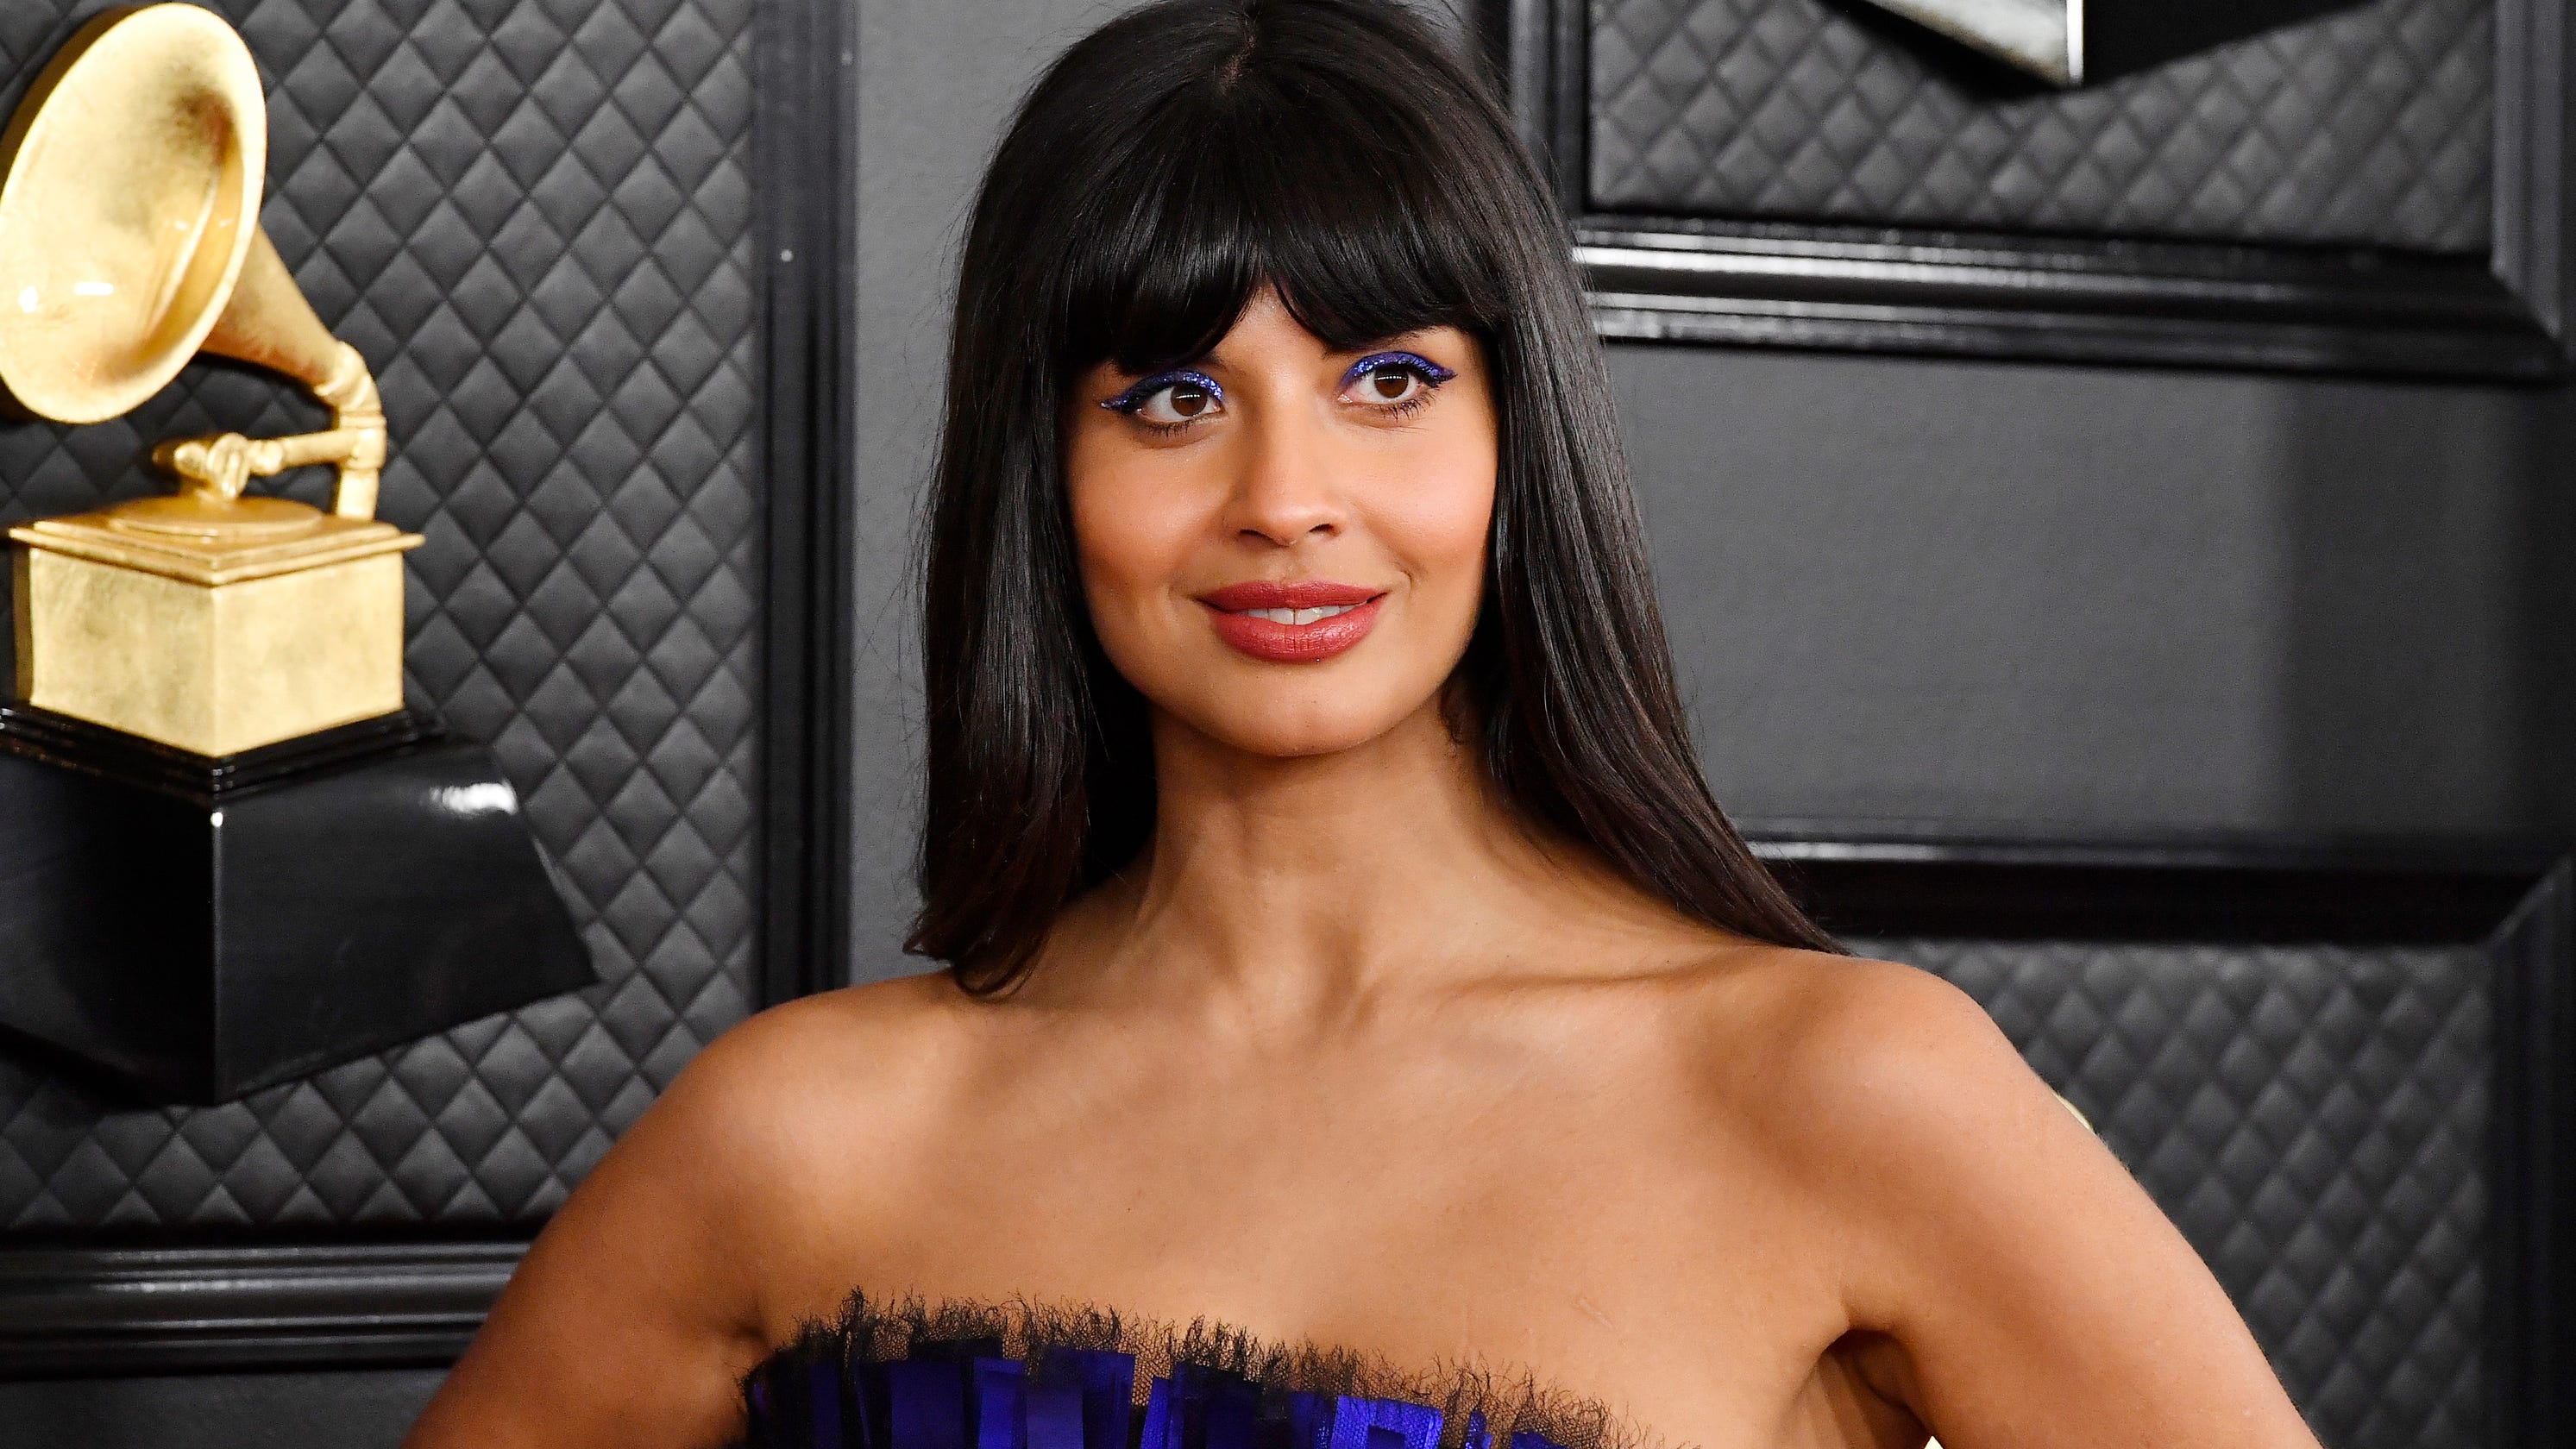 Jameela Jamil comes out as 'queer' amid 'brutal' backlash over voguing show; quits Twitter